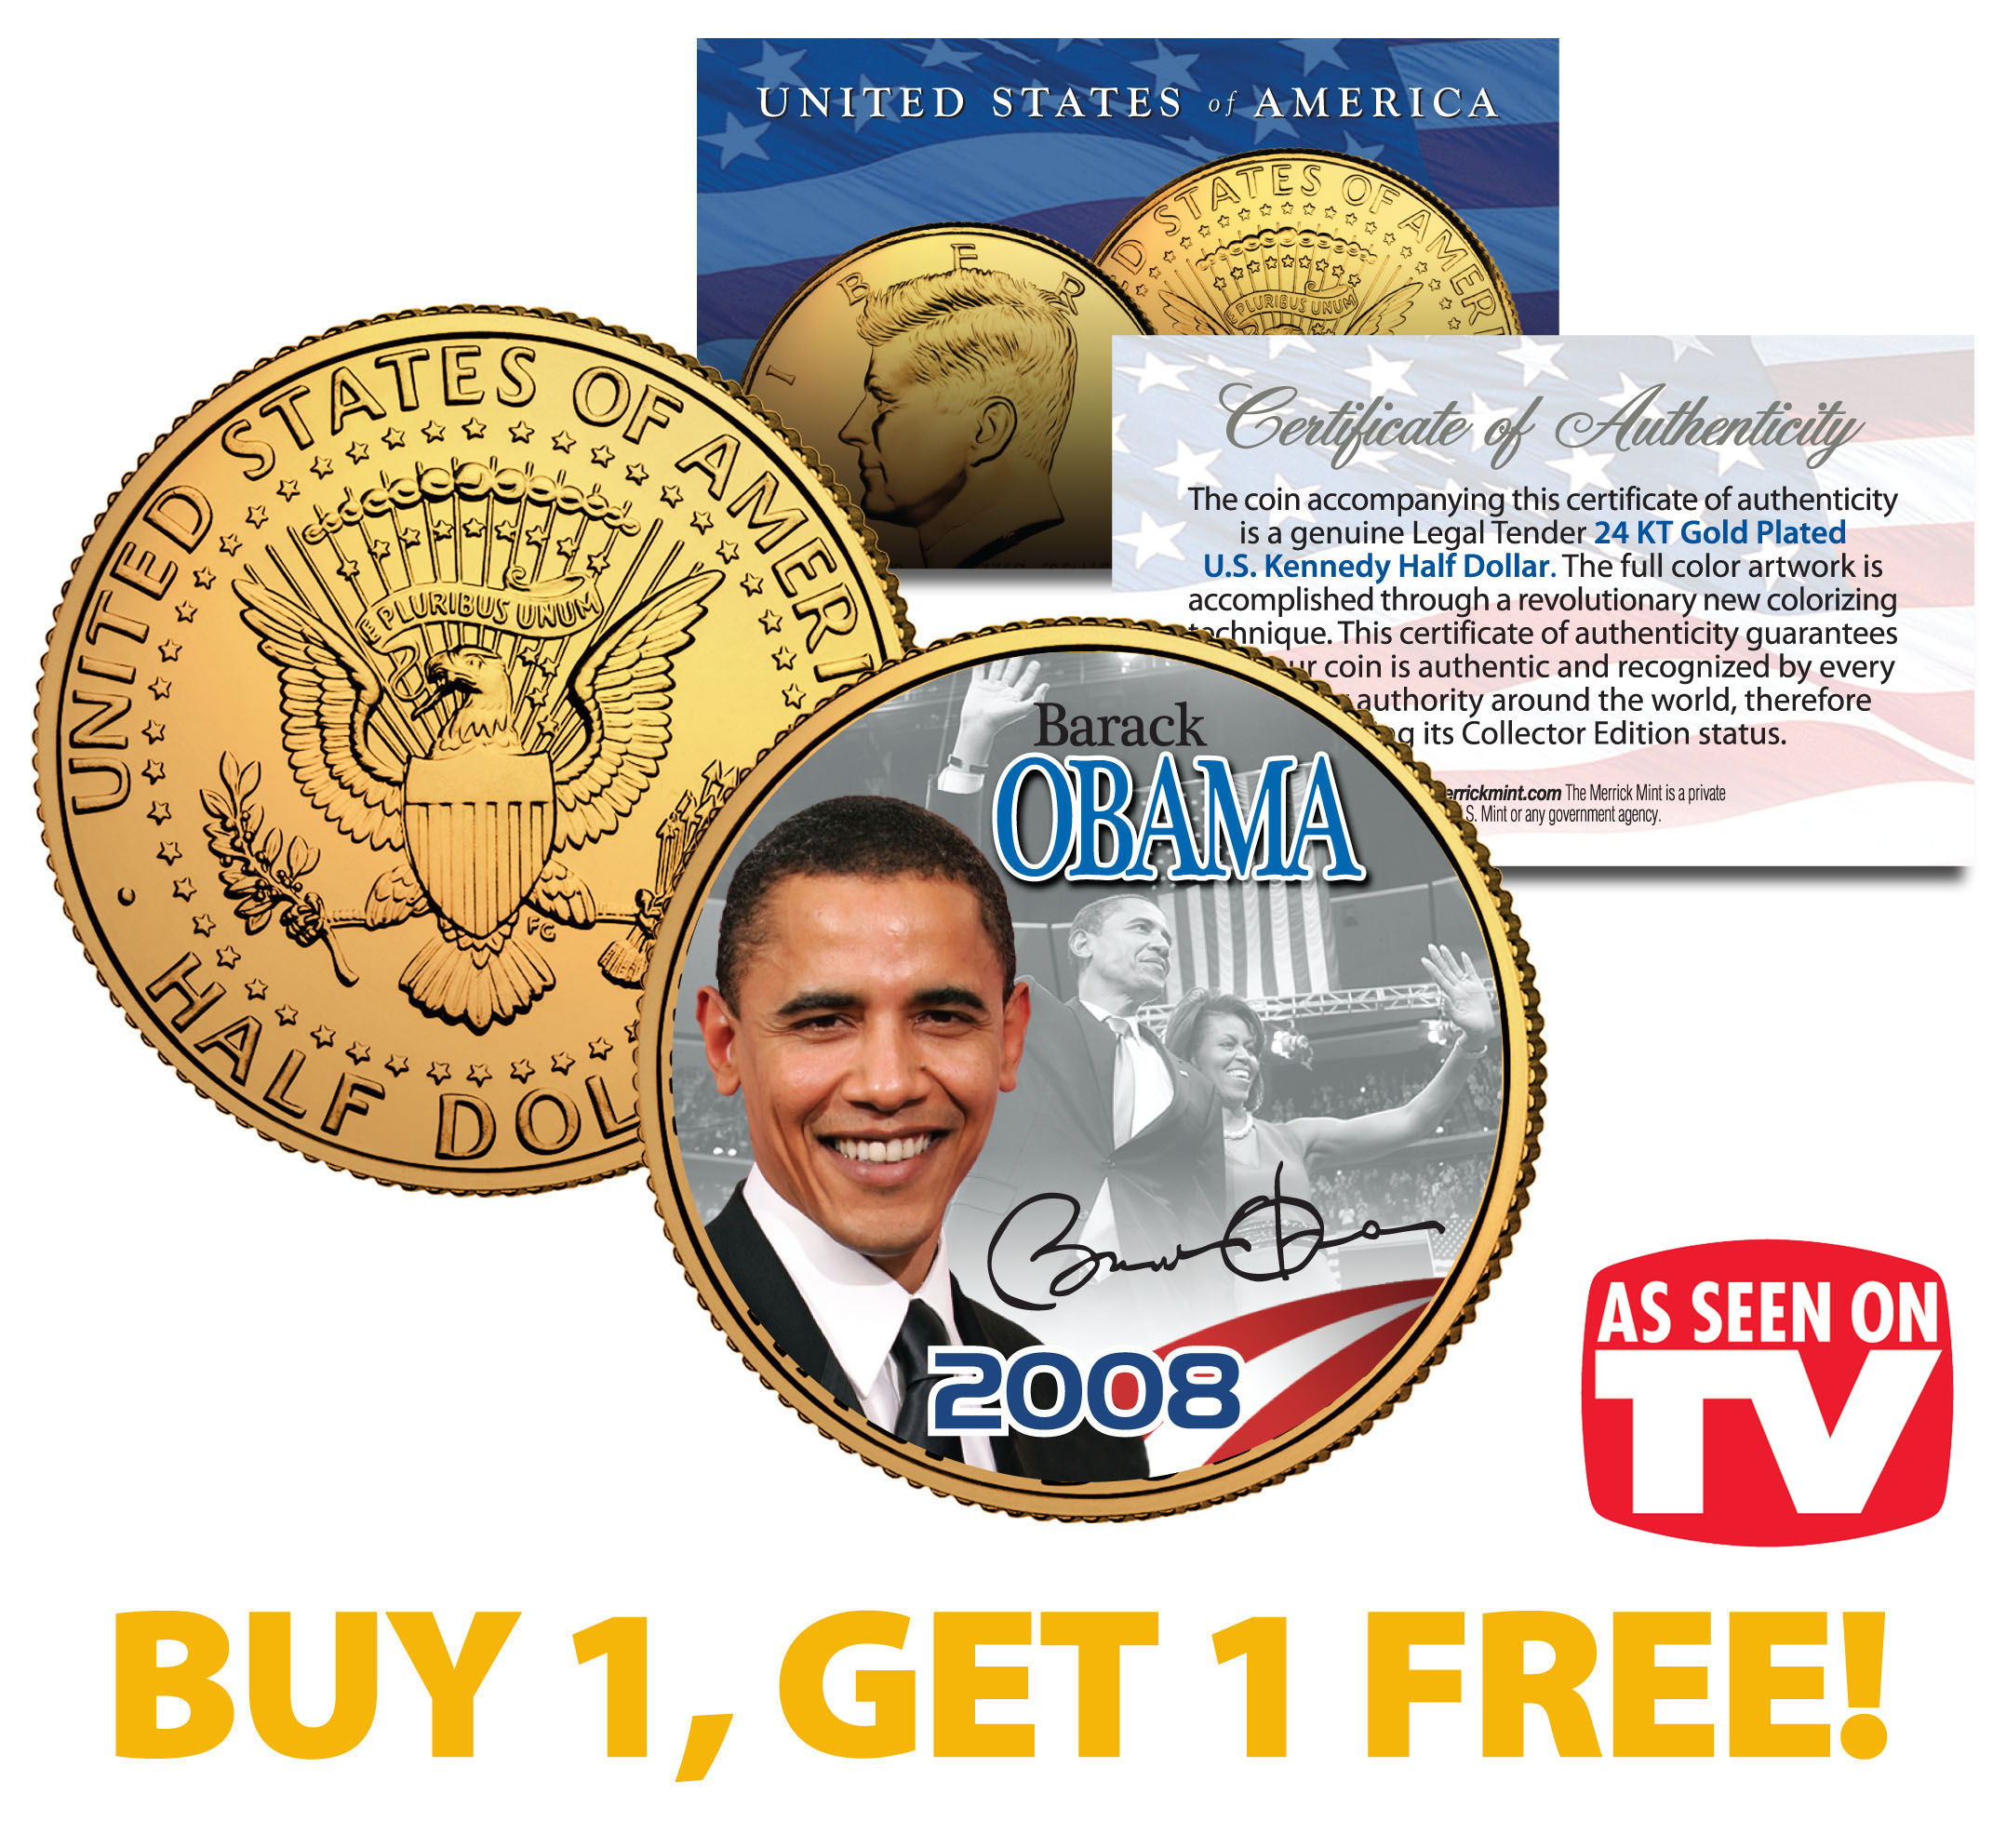 barack obama 2008 jfk half dollar coin as seen on tv buy 1 get 1 tanga. Black Bedroom Furniture Sets. Home Design Ideas